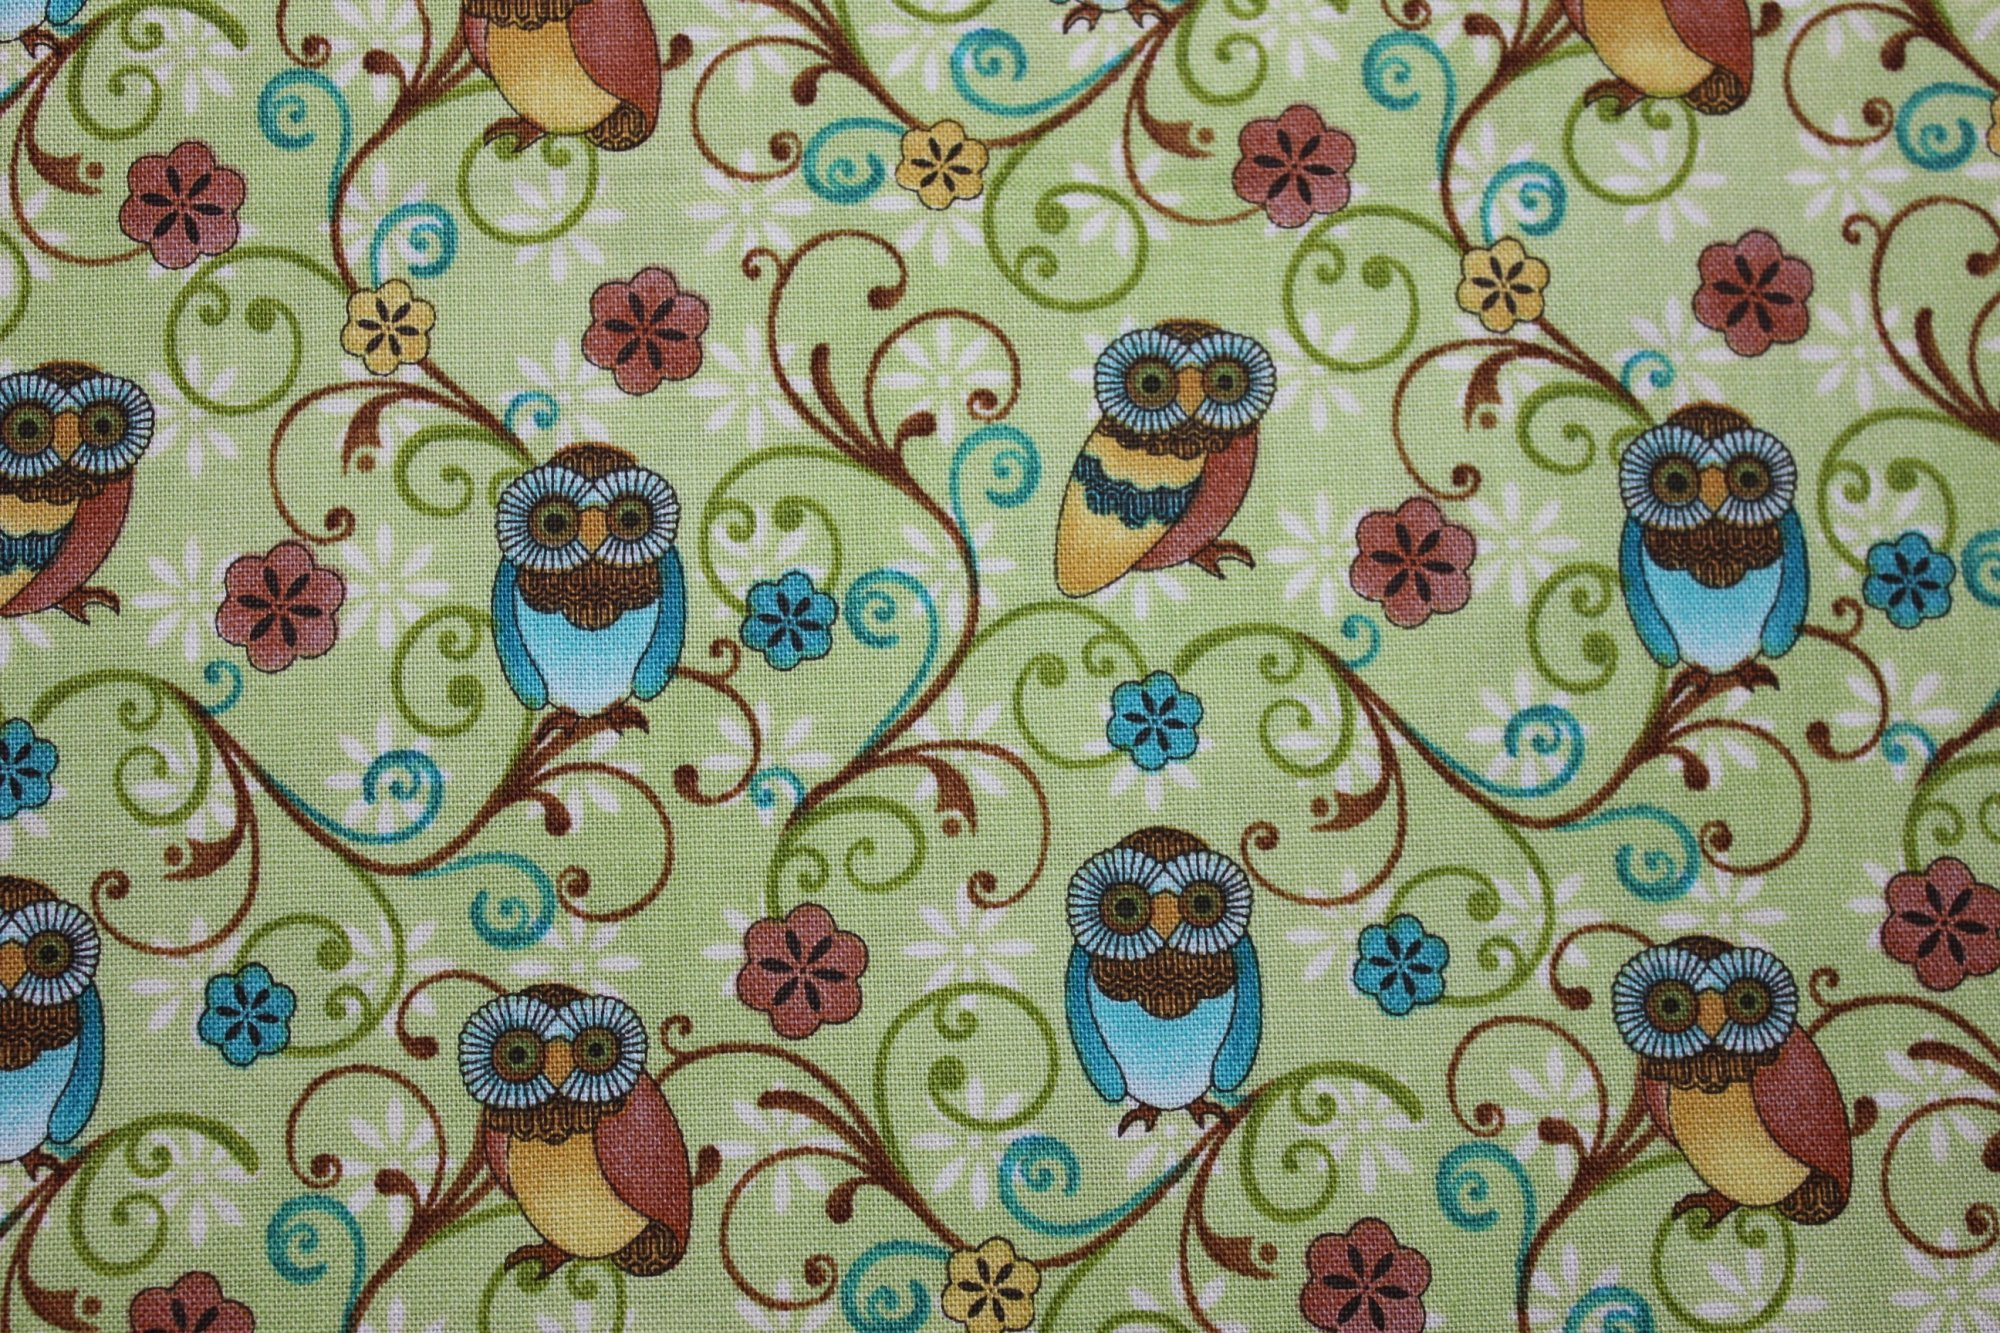 Who's Who Owl with Swirls by Paintbrush Studio